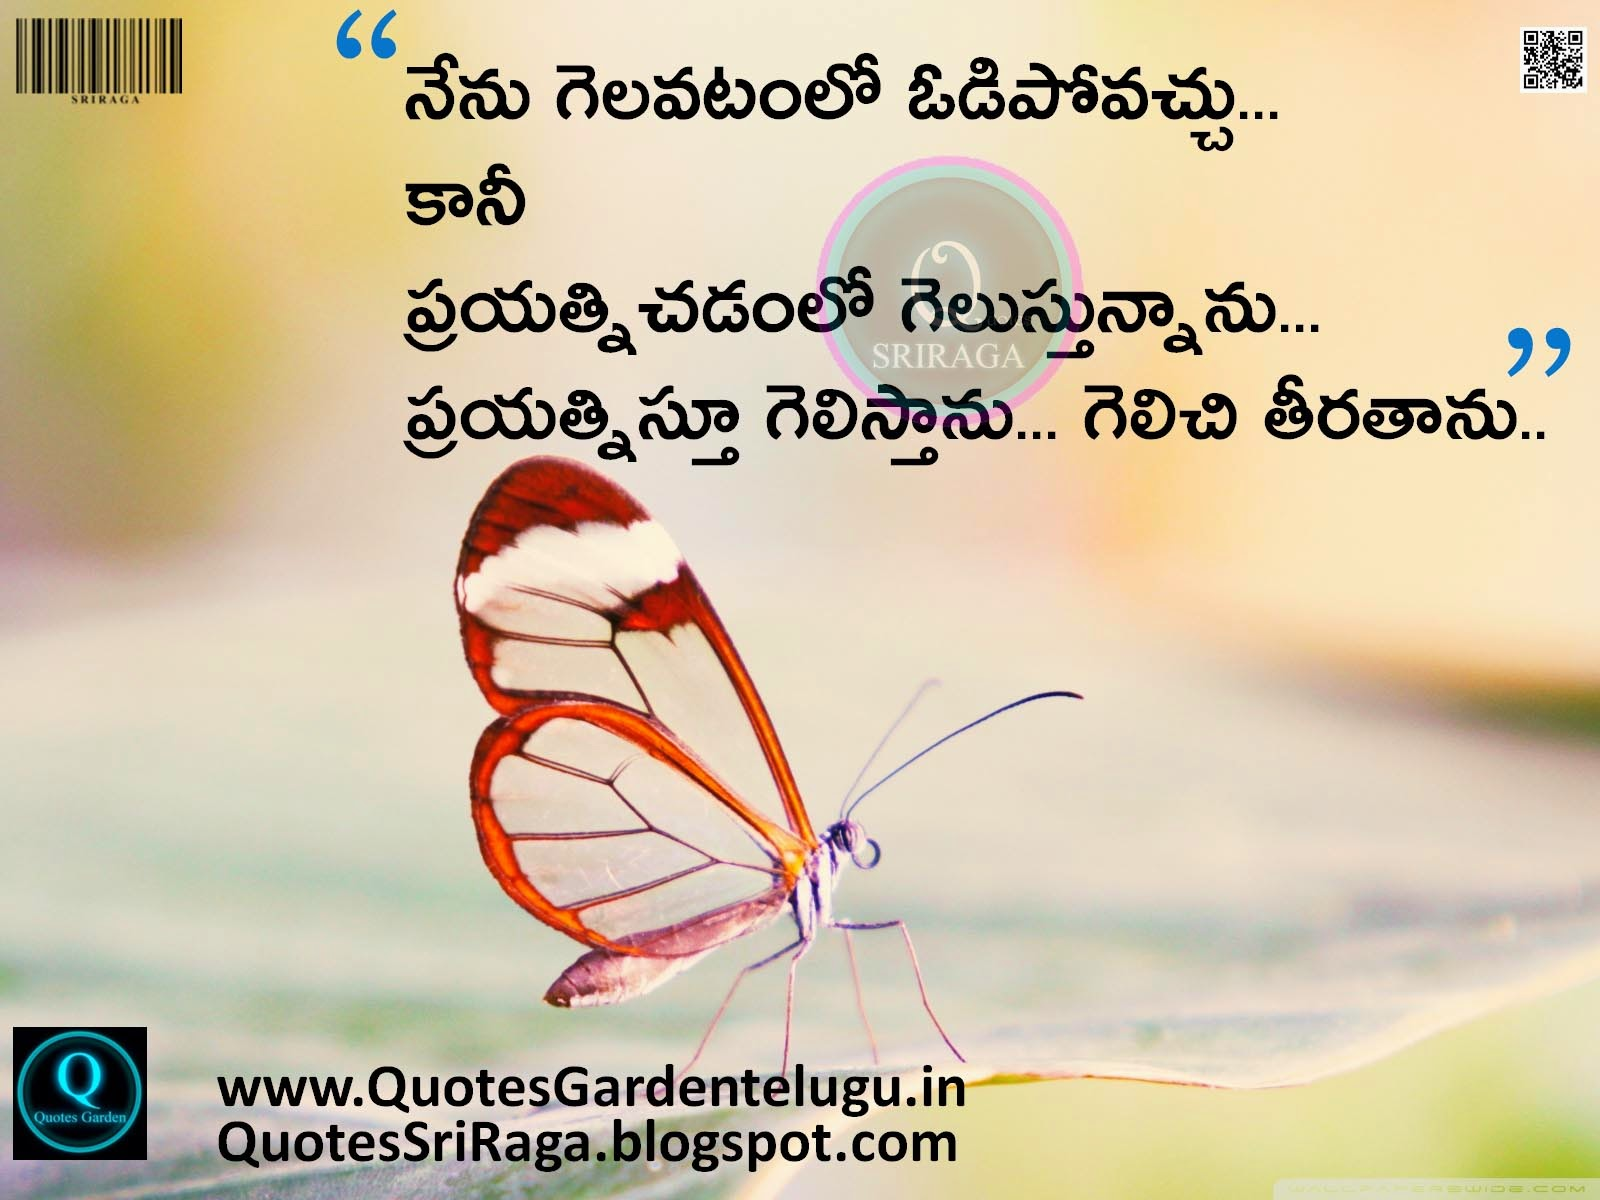 Best Telugu Inspirational Quotes Top Telugu Victory Quotes